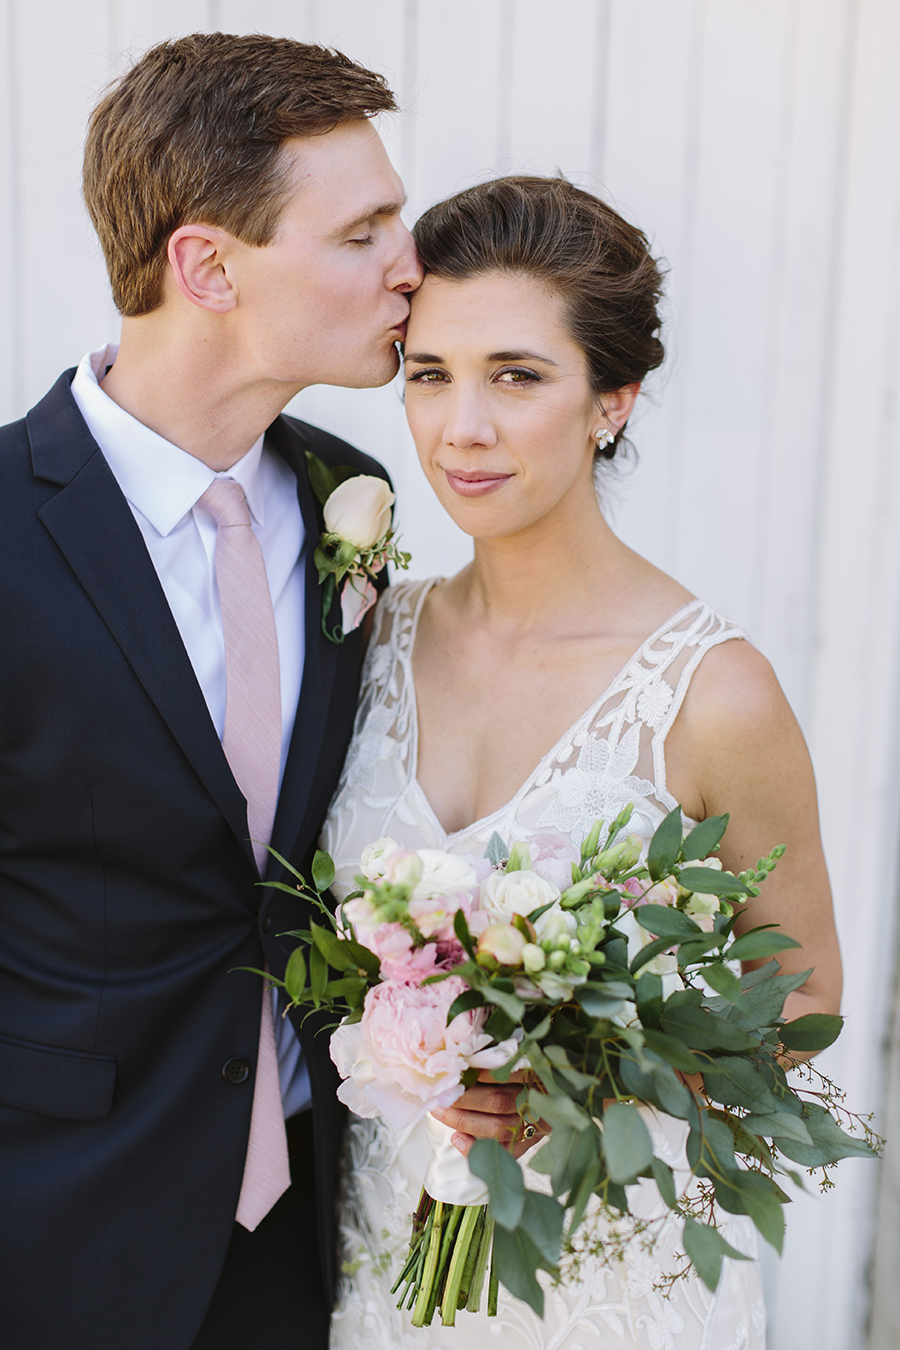 emily&andy-thecompasspointshere_004.jpg